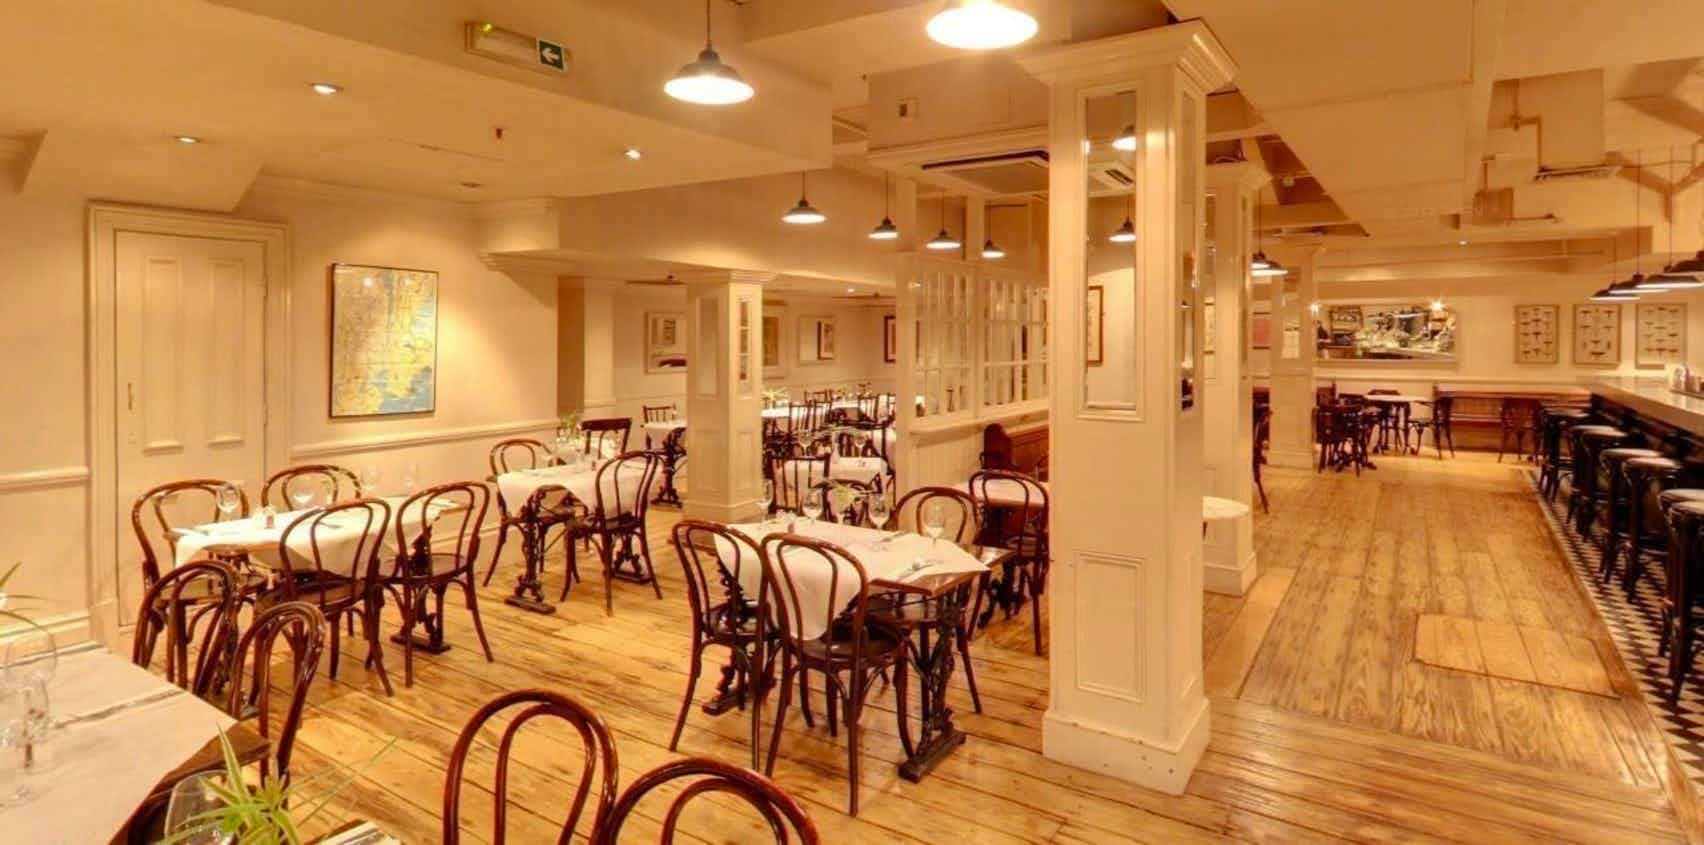 Dinner, Exclusive Hire, Bedford & Strand